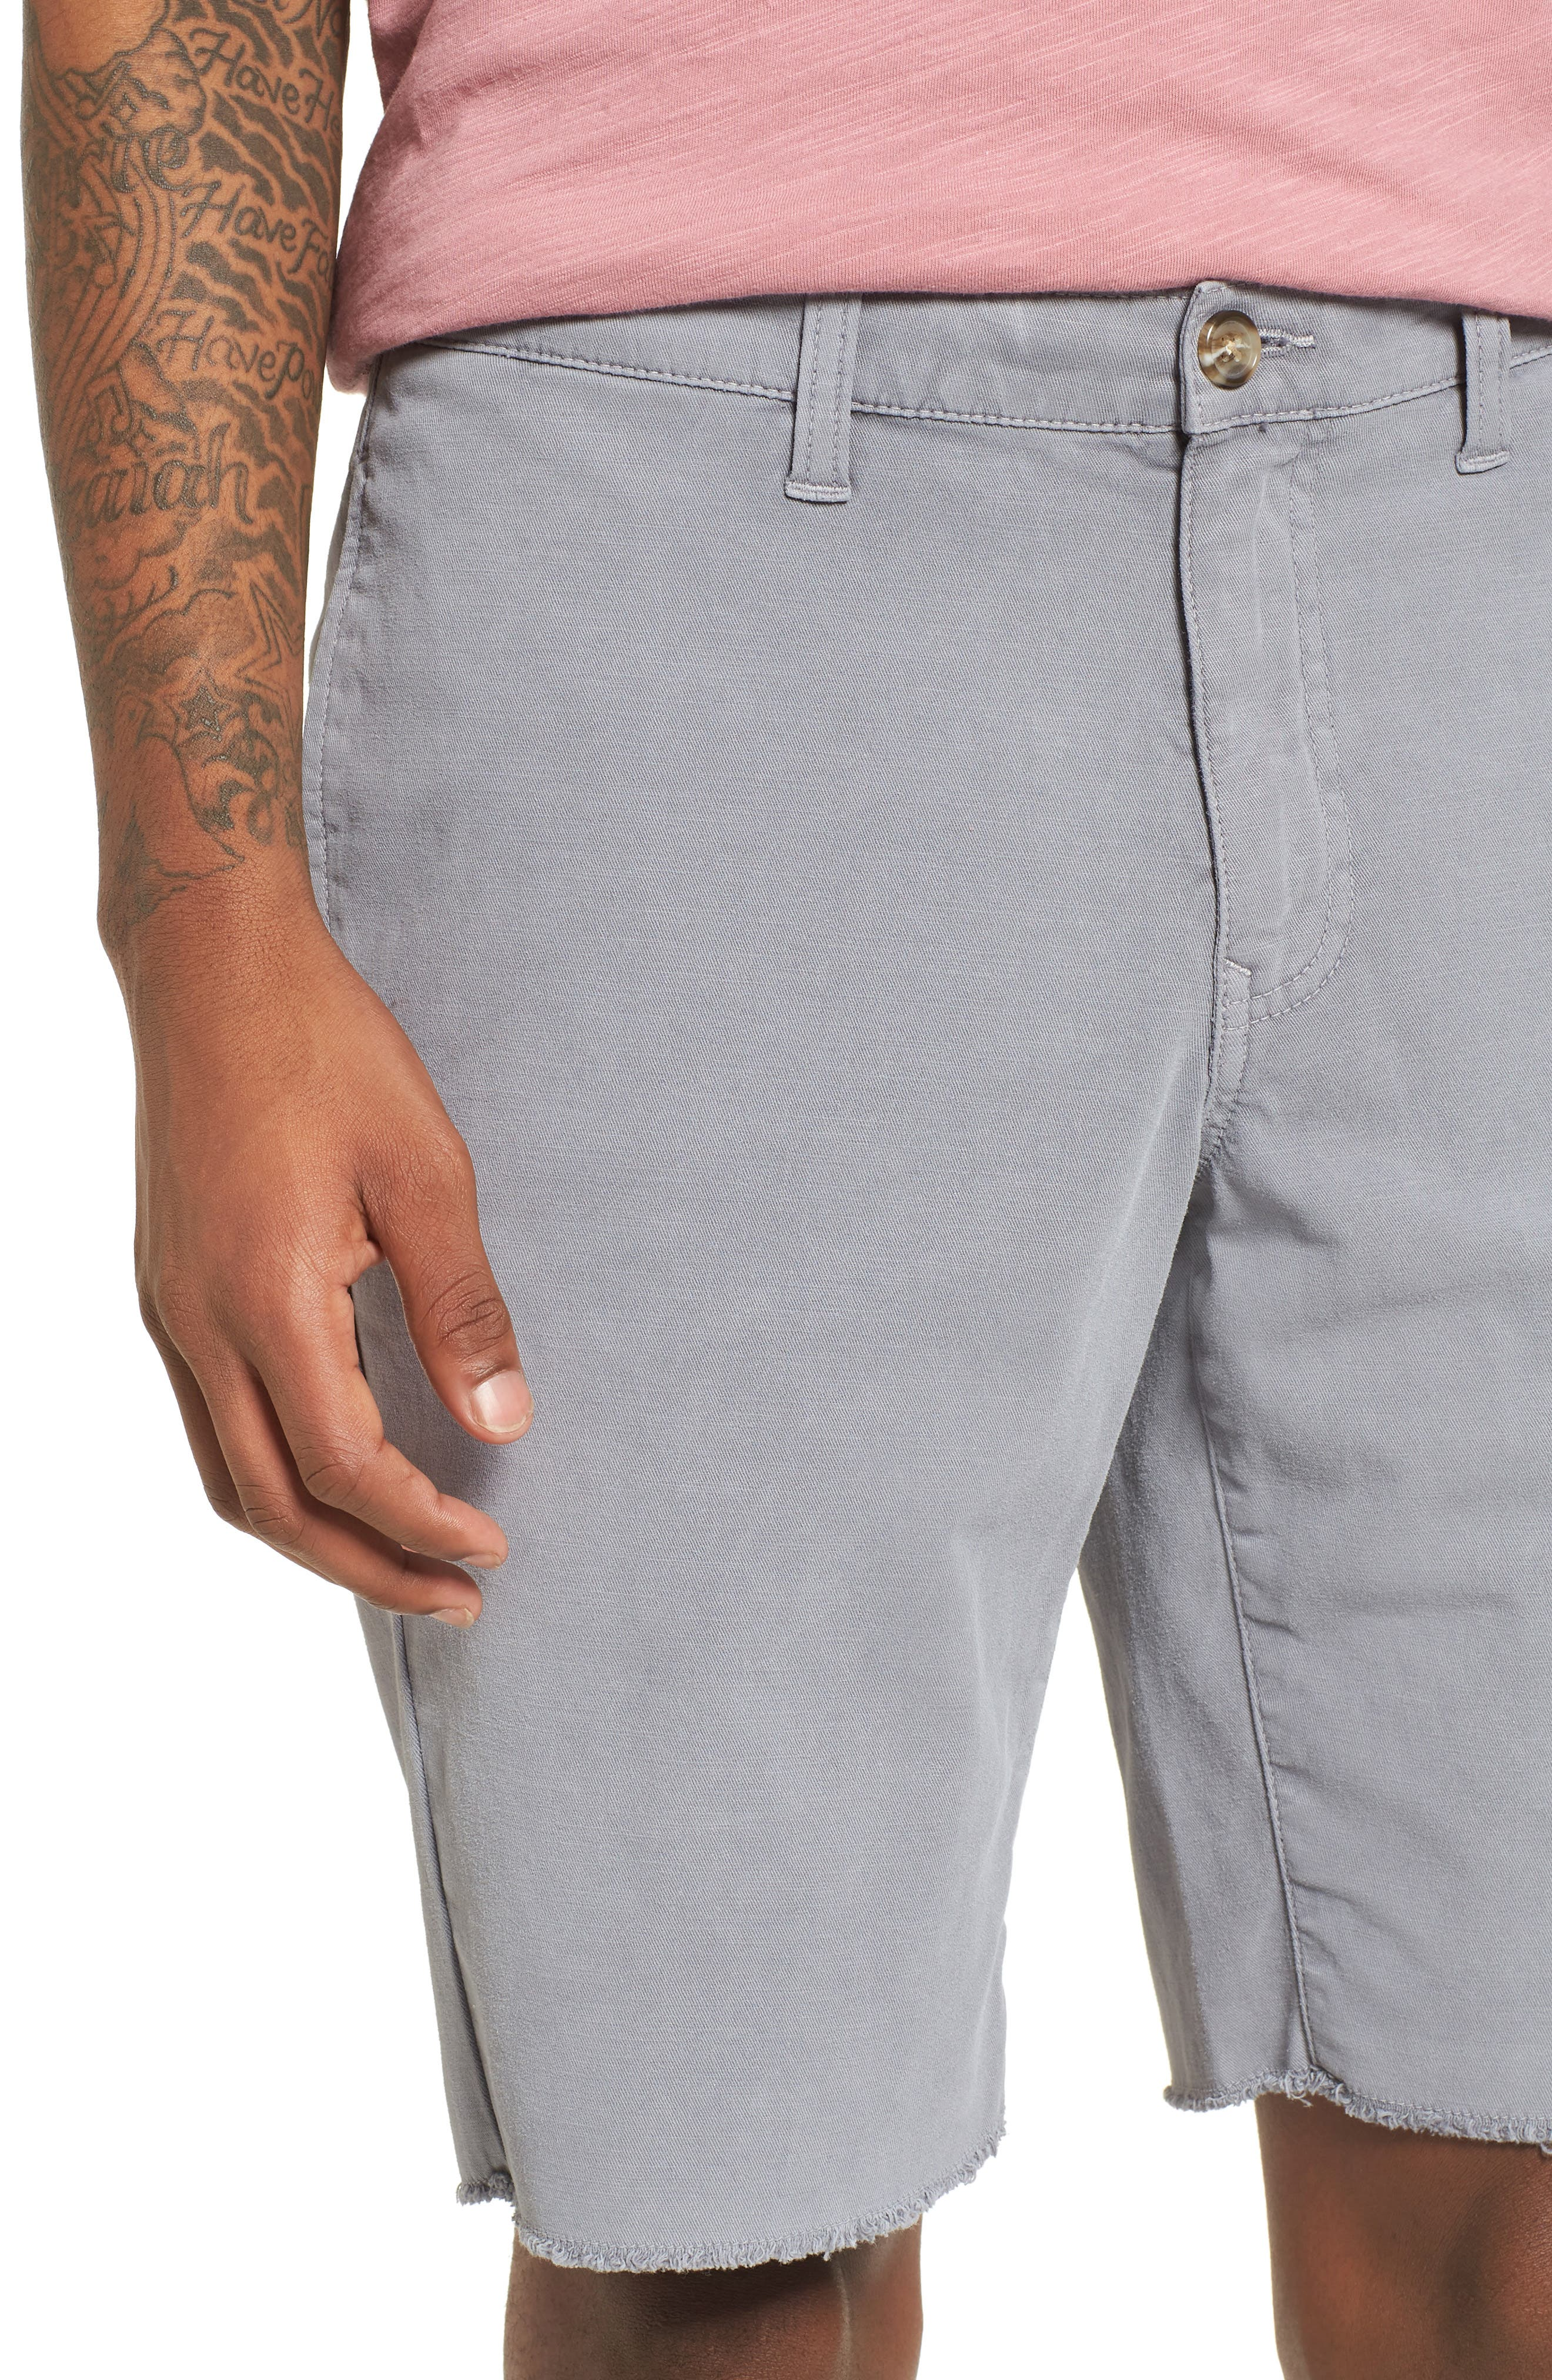 Frost Wash Shorts,                             Alternate thumbnail 4, color,                             Grey Sleet